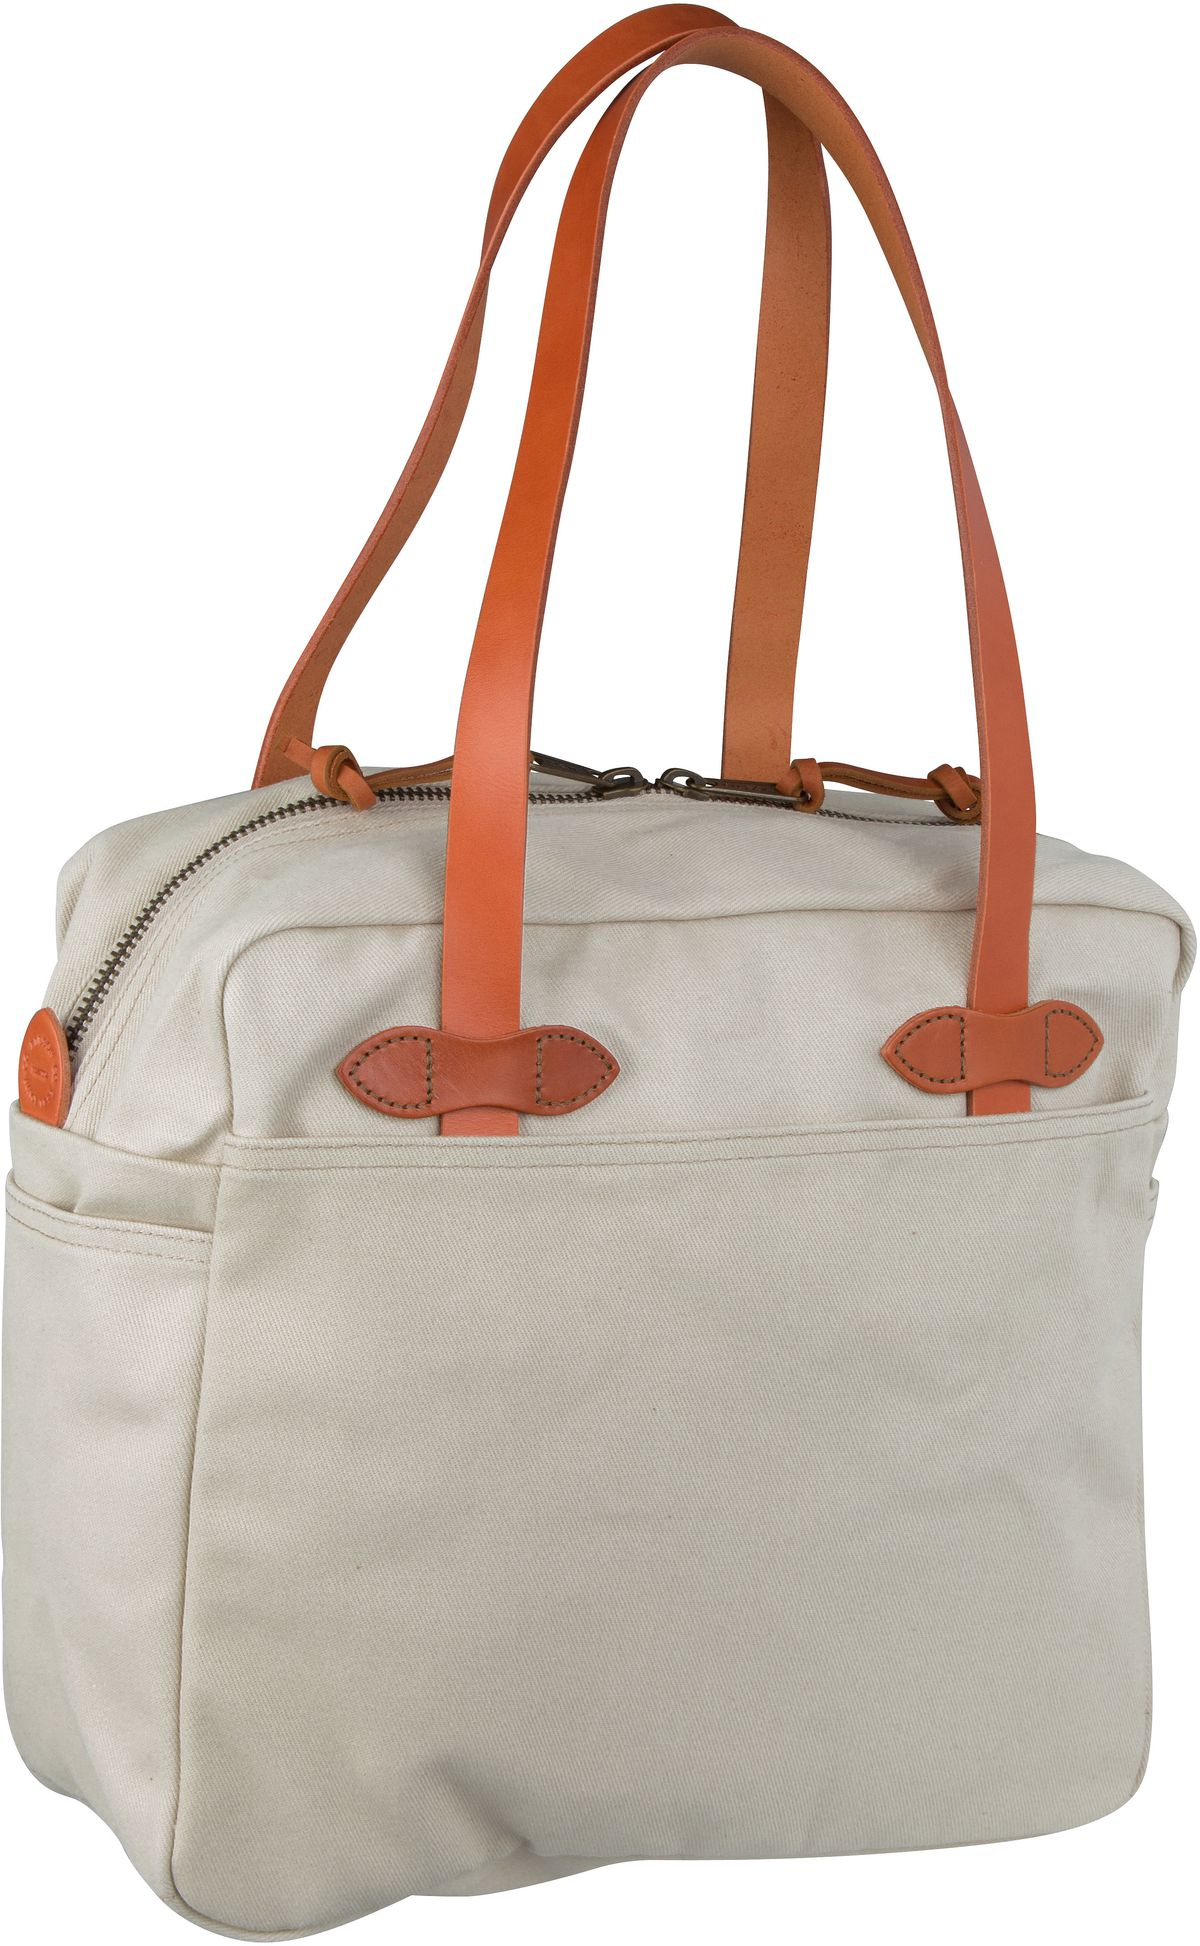 Filson Handtasche Tote Bag with Zipper Natural (25 Liter)